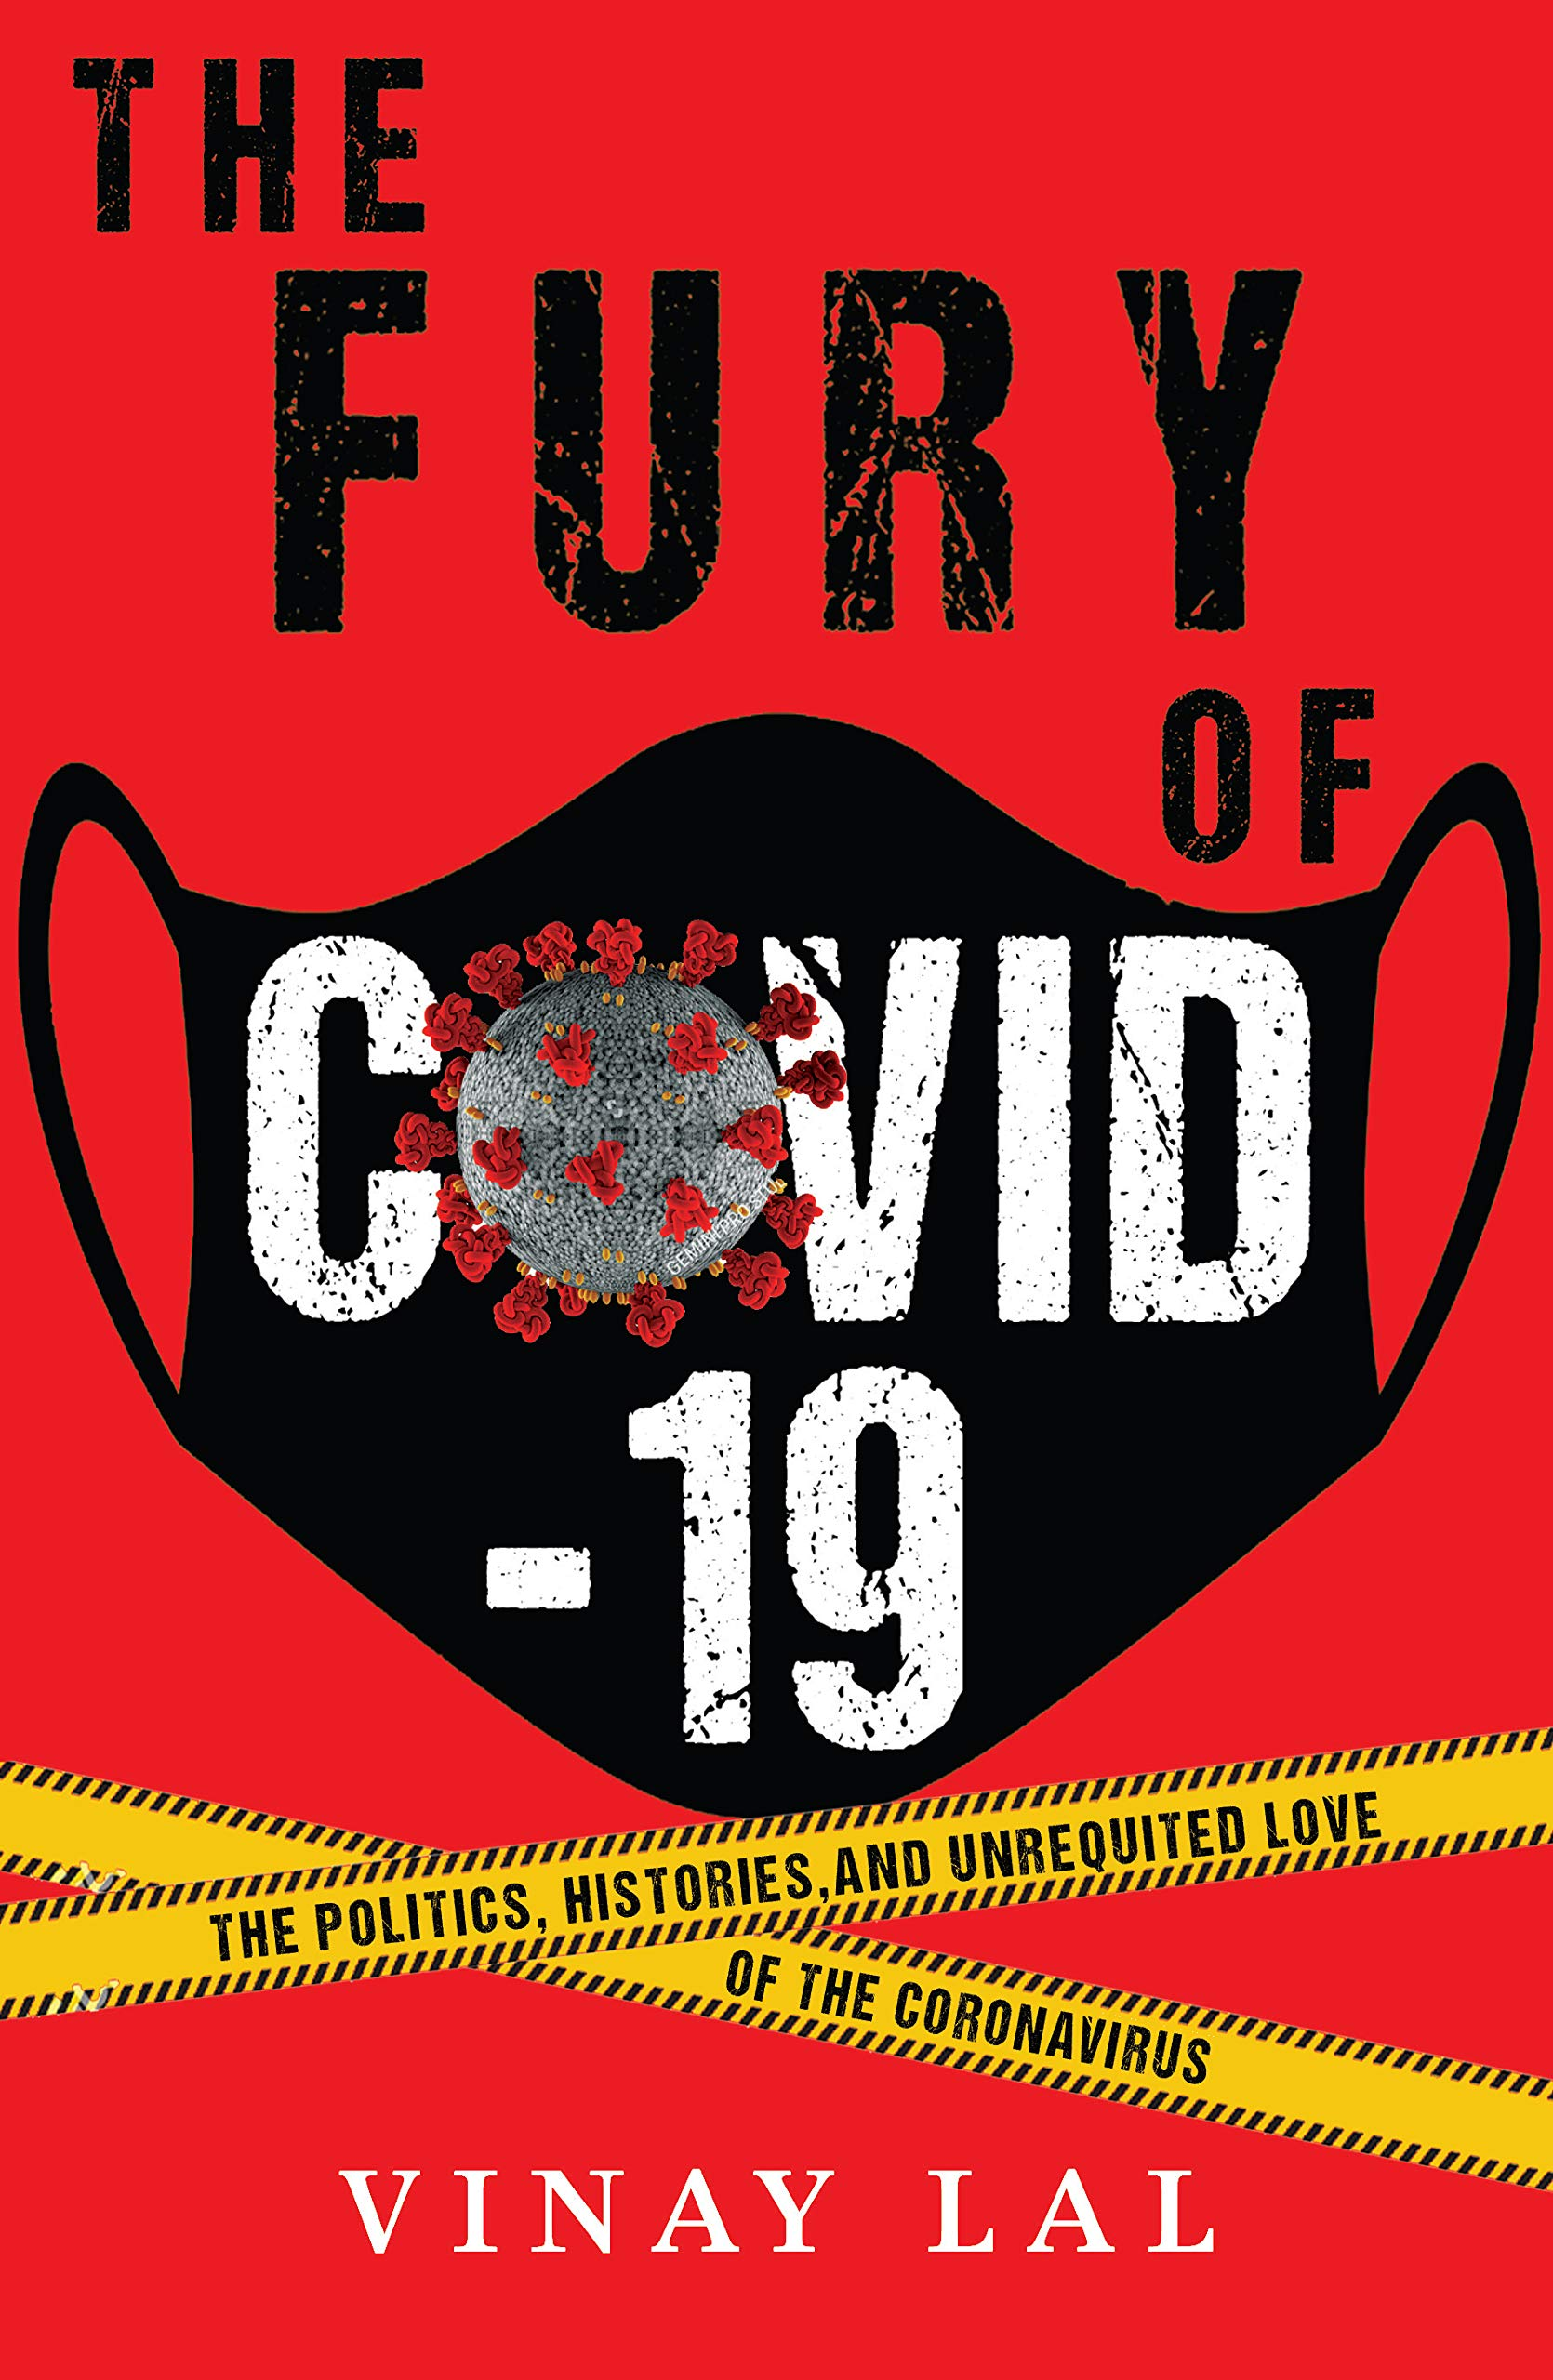 The fury of Covid-19:The Politics, Histories, and Unrequited Love of the Coronavirus by Vinay Lal,Macmillan, Rs 599